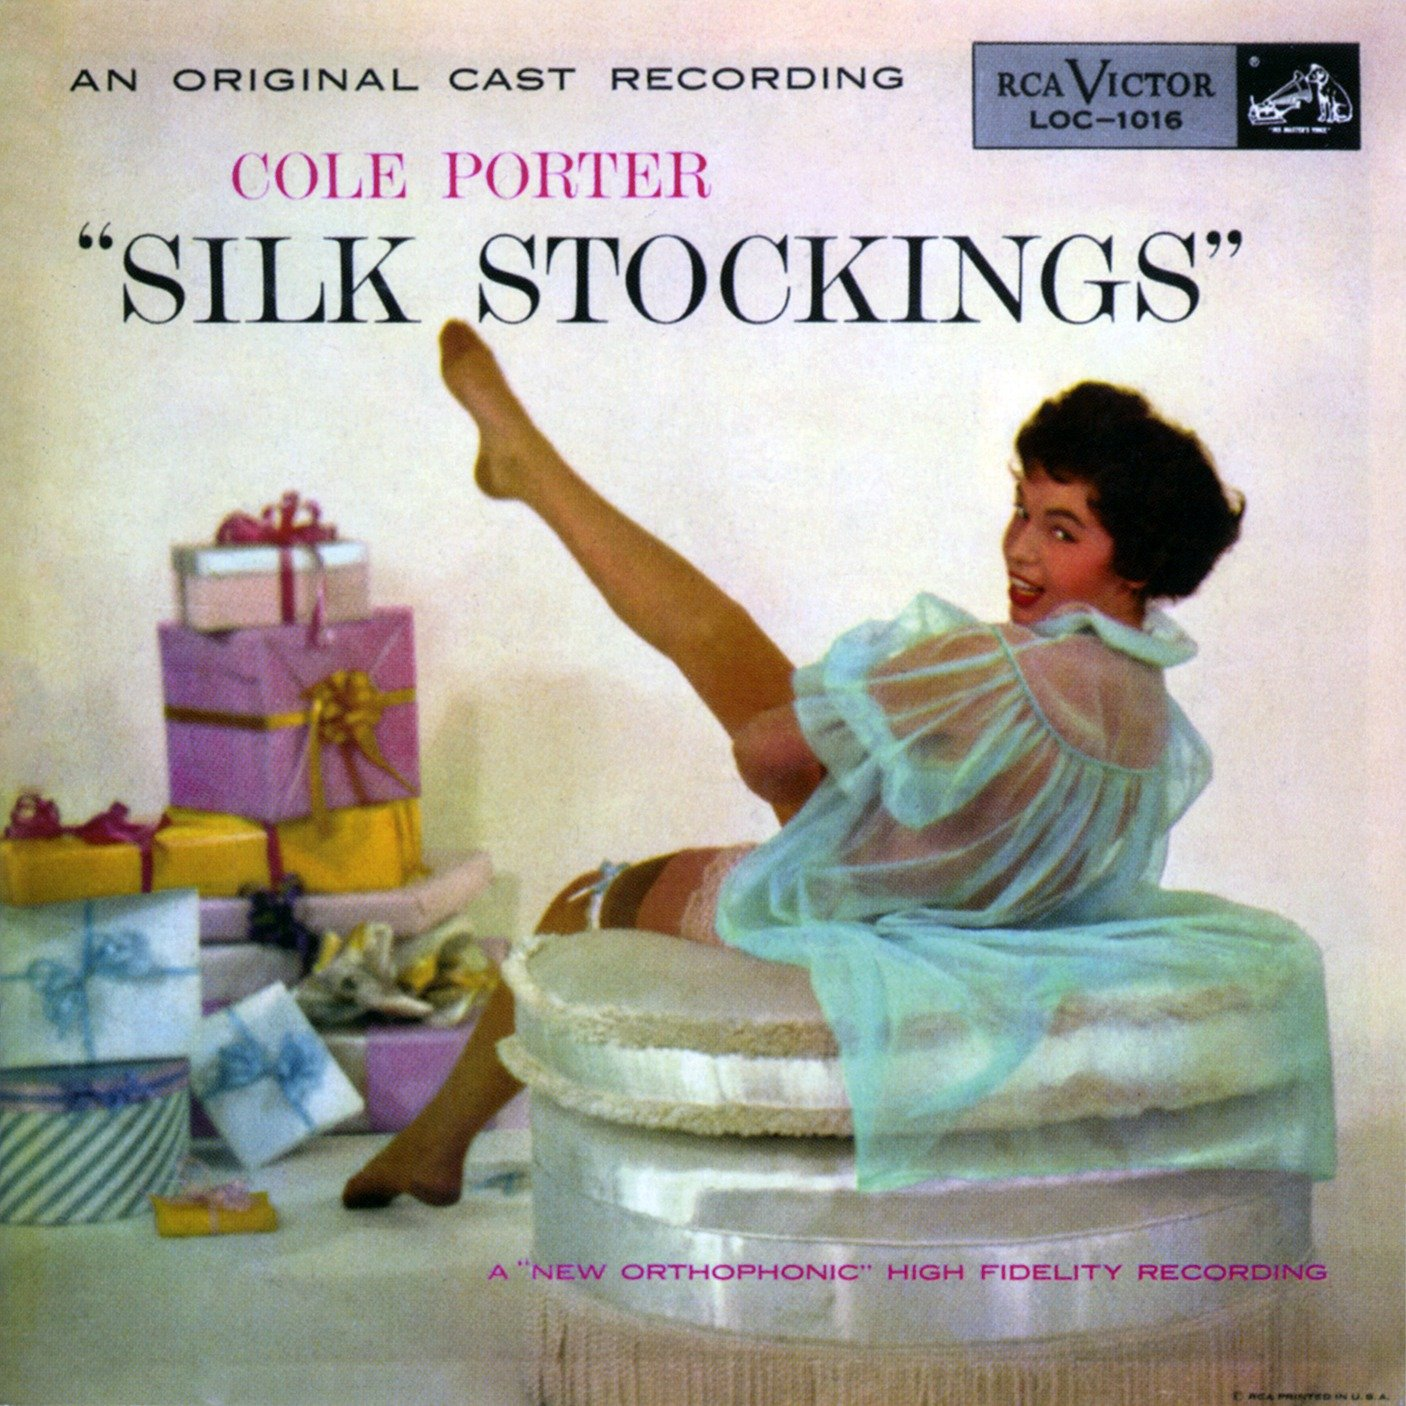 Silk Stockings – Original Broadway Cast 1955